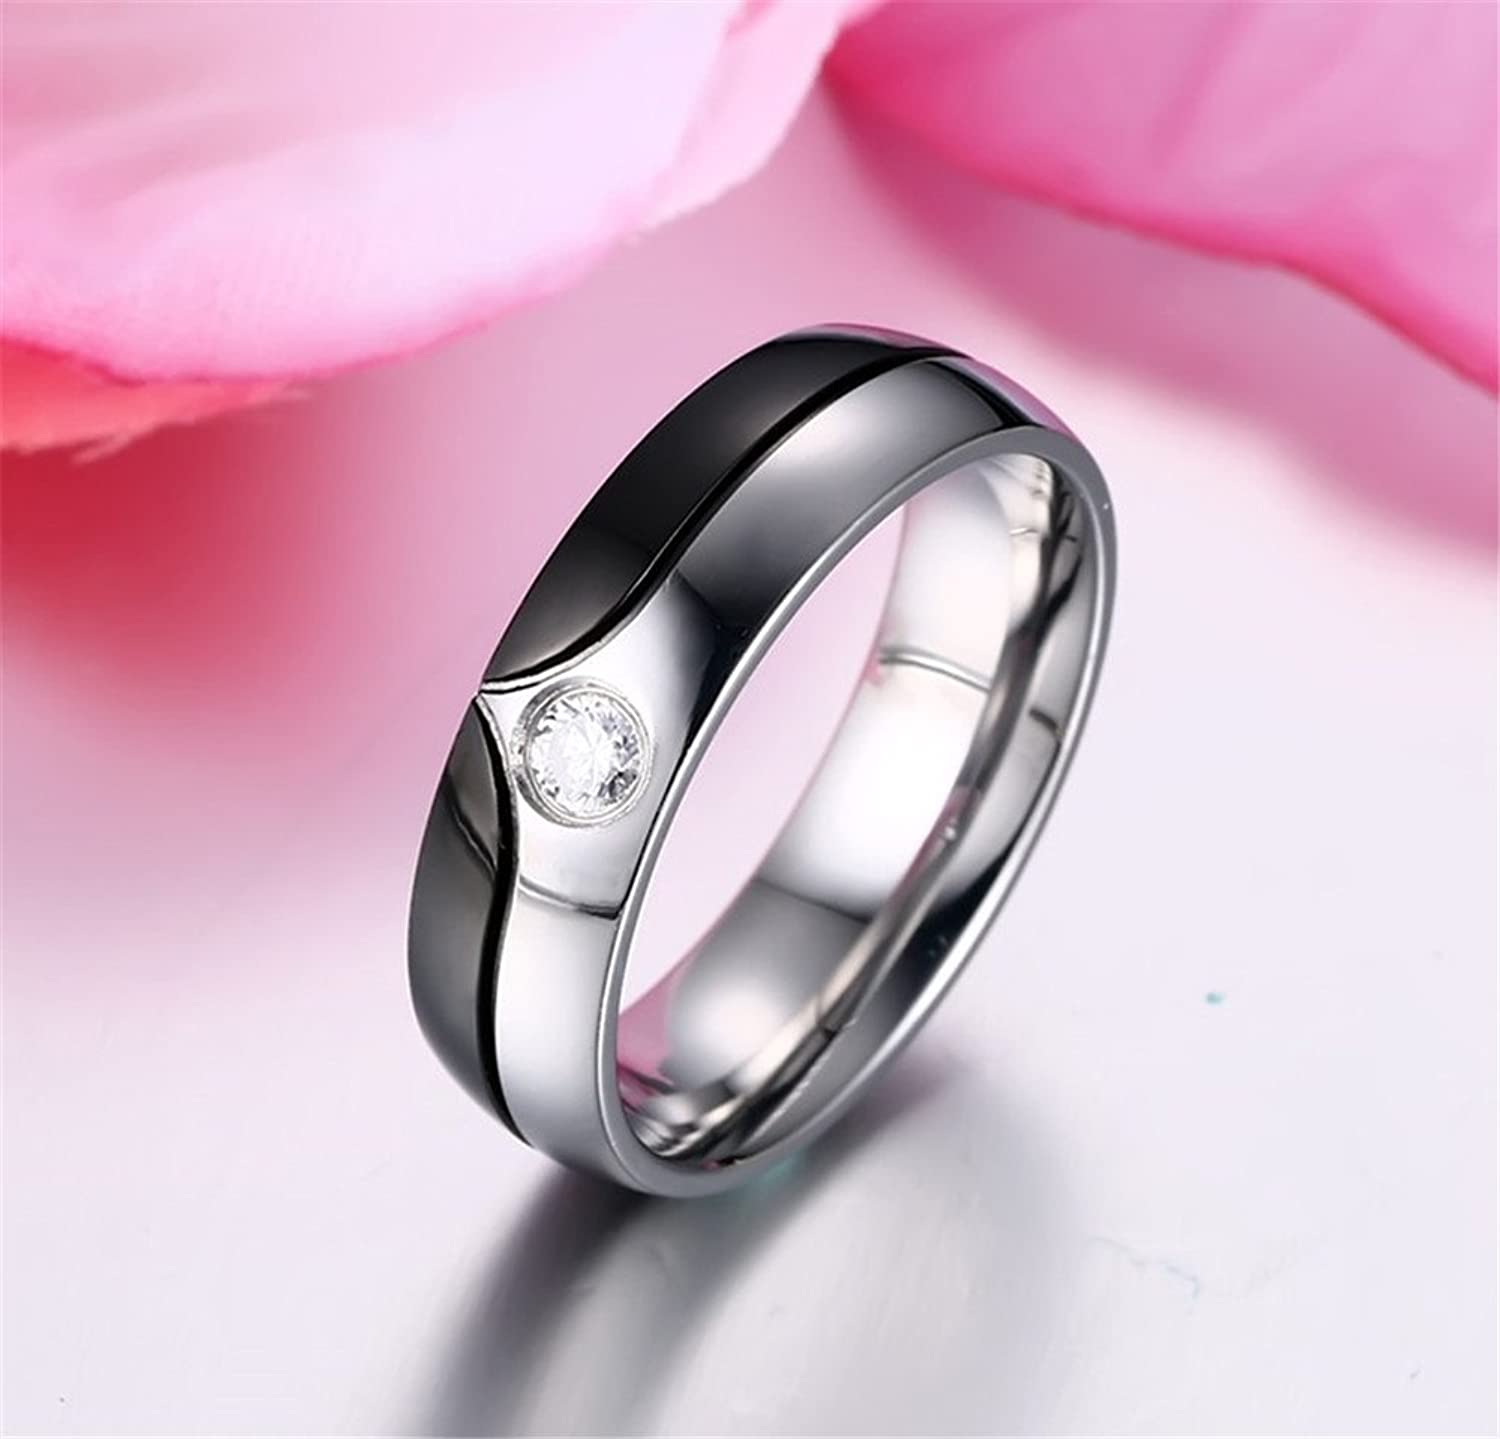 PAMTIER His and Hers Wedding Ring Sets Couples Matching Rings ...